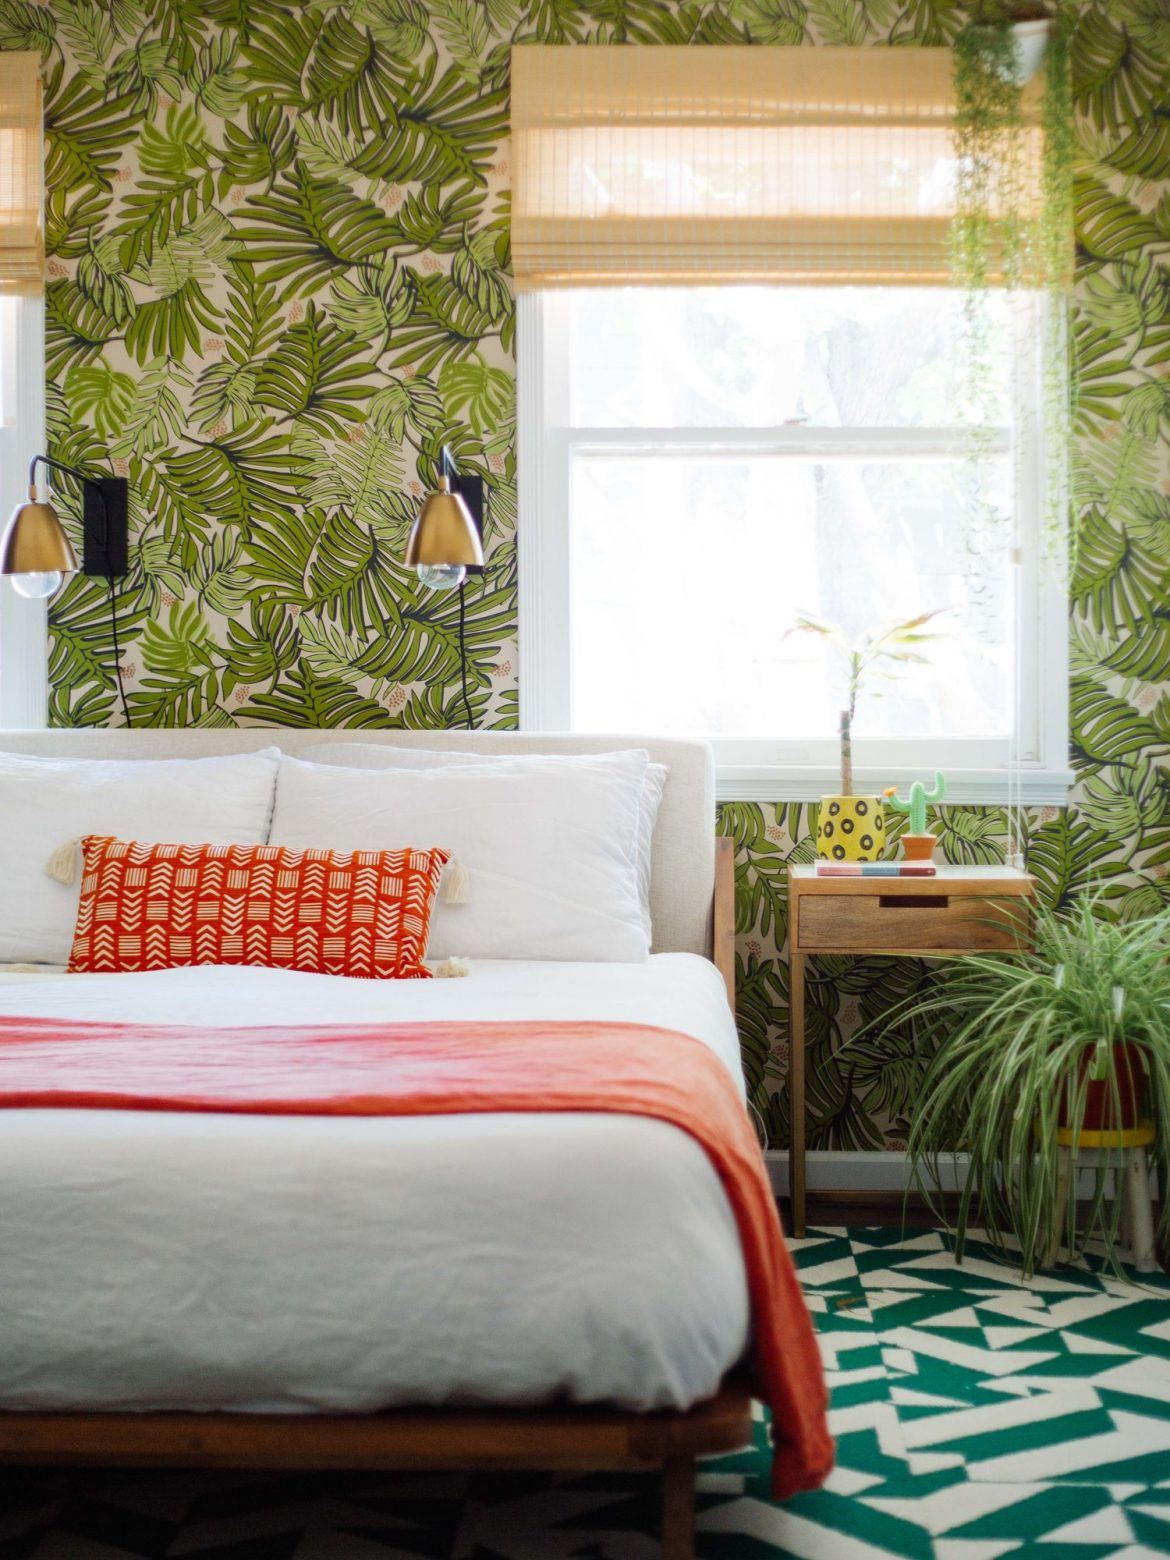 How About a Bedroom Summer Refresh We Give You The Tips bedroom summer refresh How About a Bedroom Summer Refresh? We Give You The Tips How About a Bedroom Summer Refresh We Give You The Tips 3